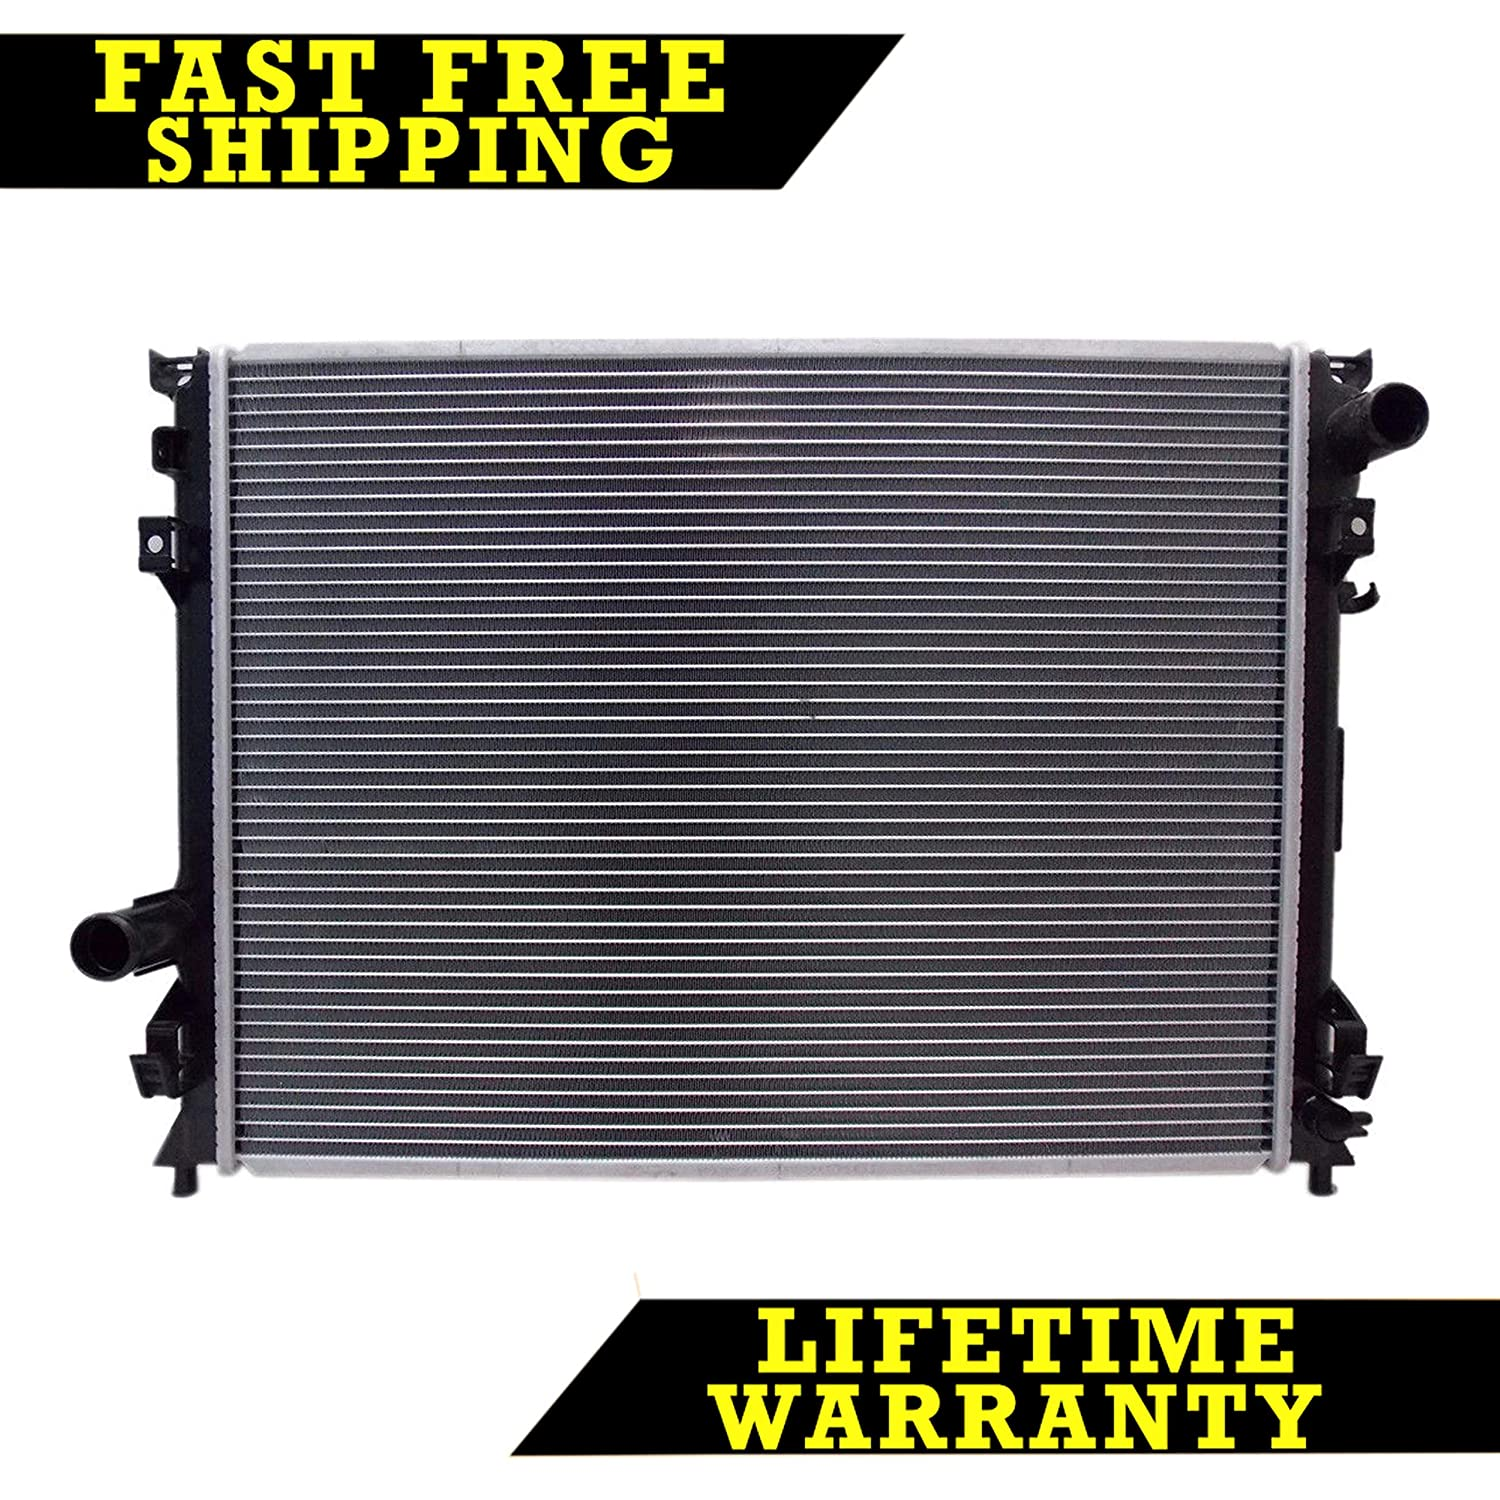 RADIATOR FOR CHRYSLER DODGE FITS 300 MAGNUM CHARGER 2767 HEAVY DUTY COOLING Sunbelt Radiators